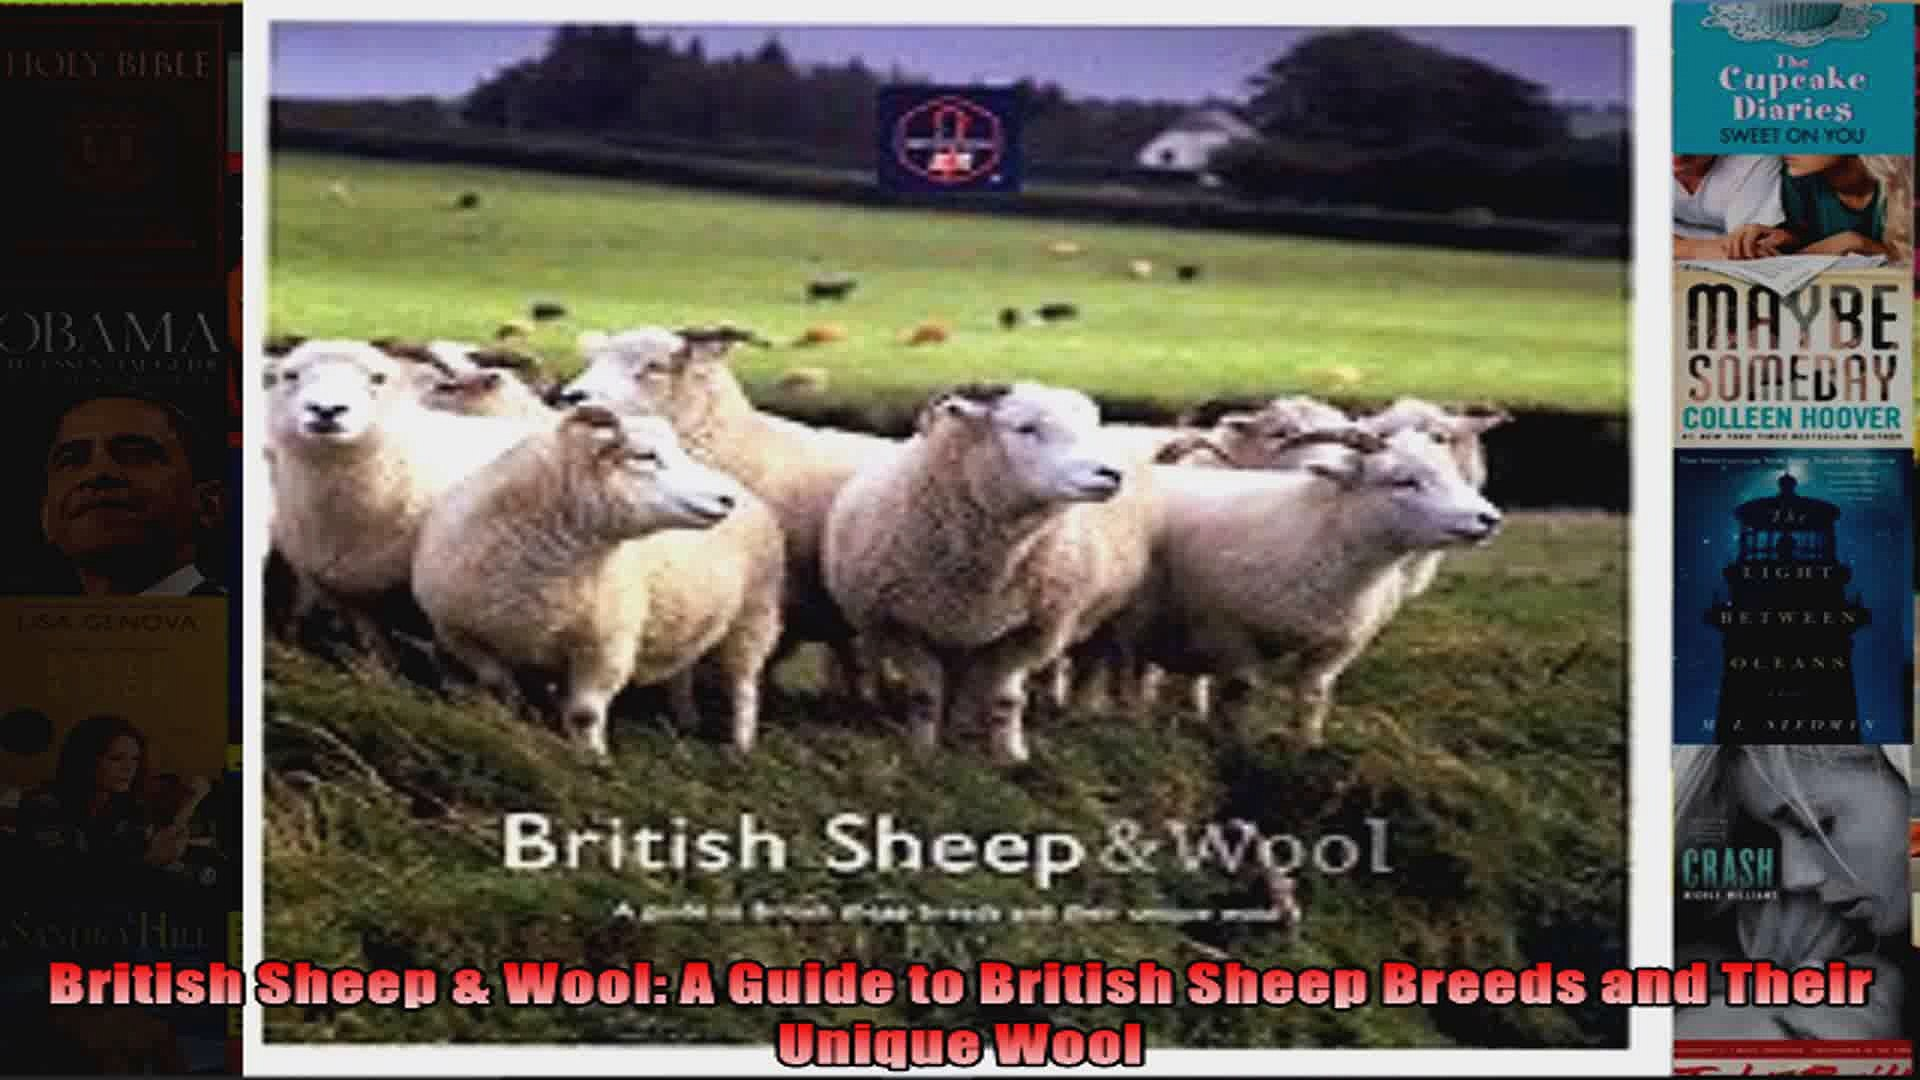 British Sheep Wool A Guide to British Sheep Breeds and Their Unique Wool